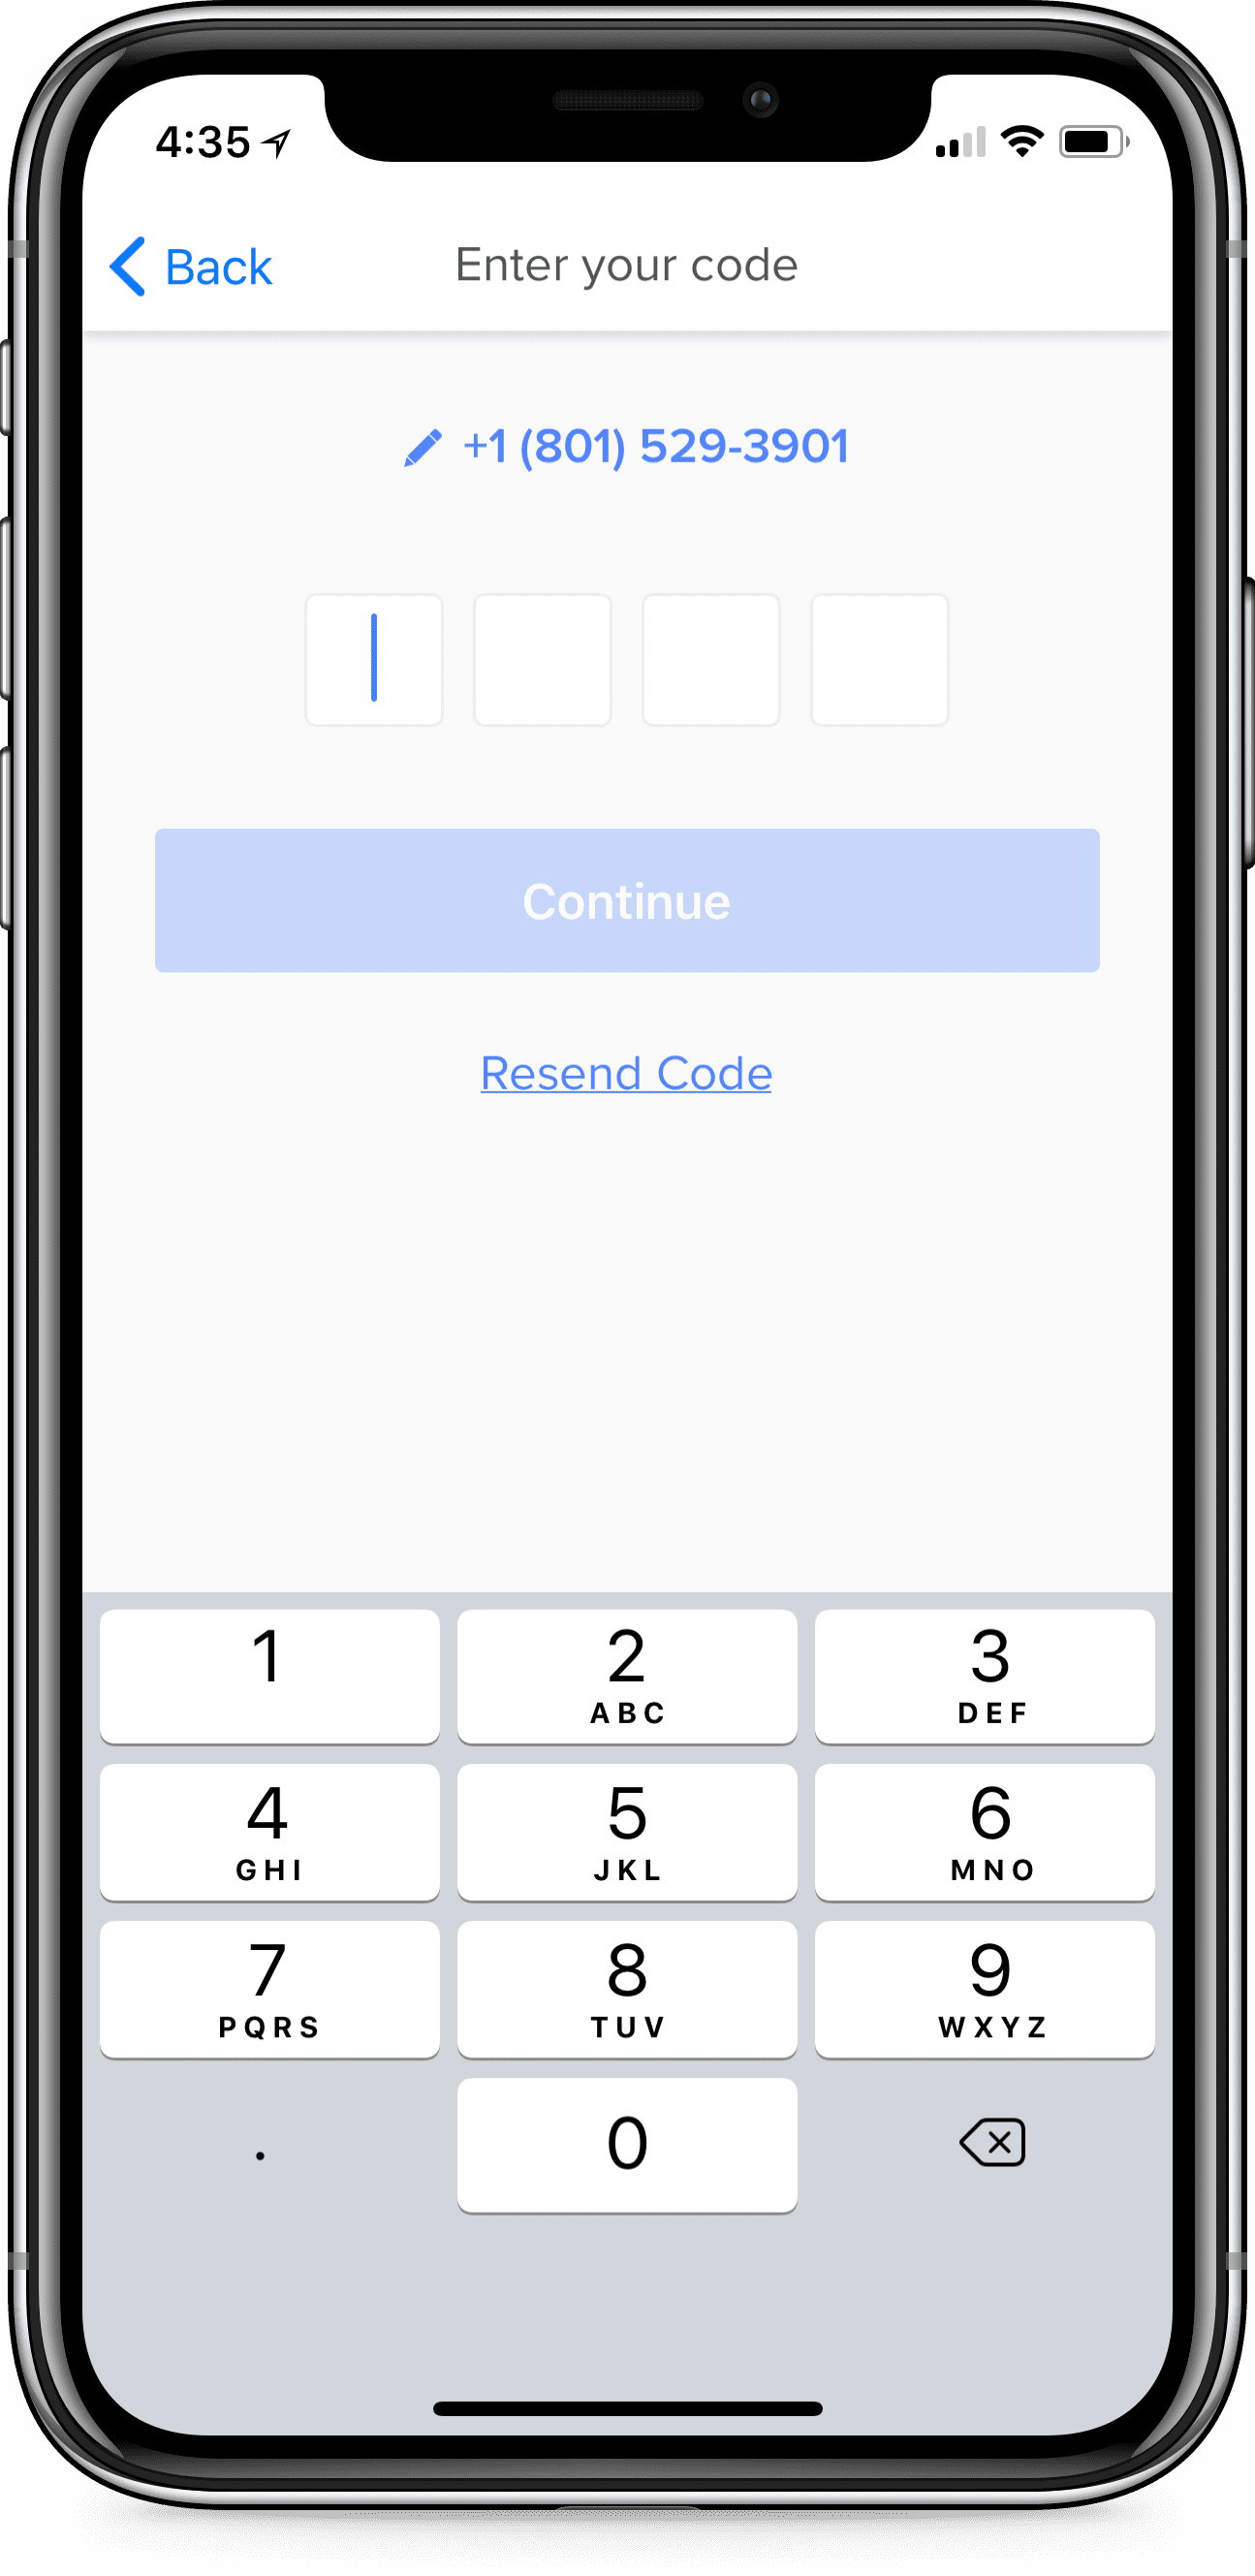 iPhone prompting a request for a 4-digit verification code